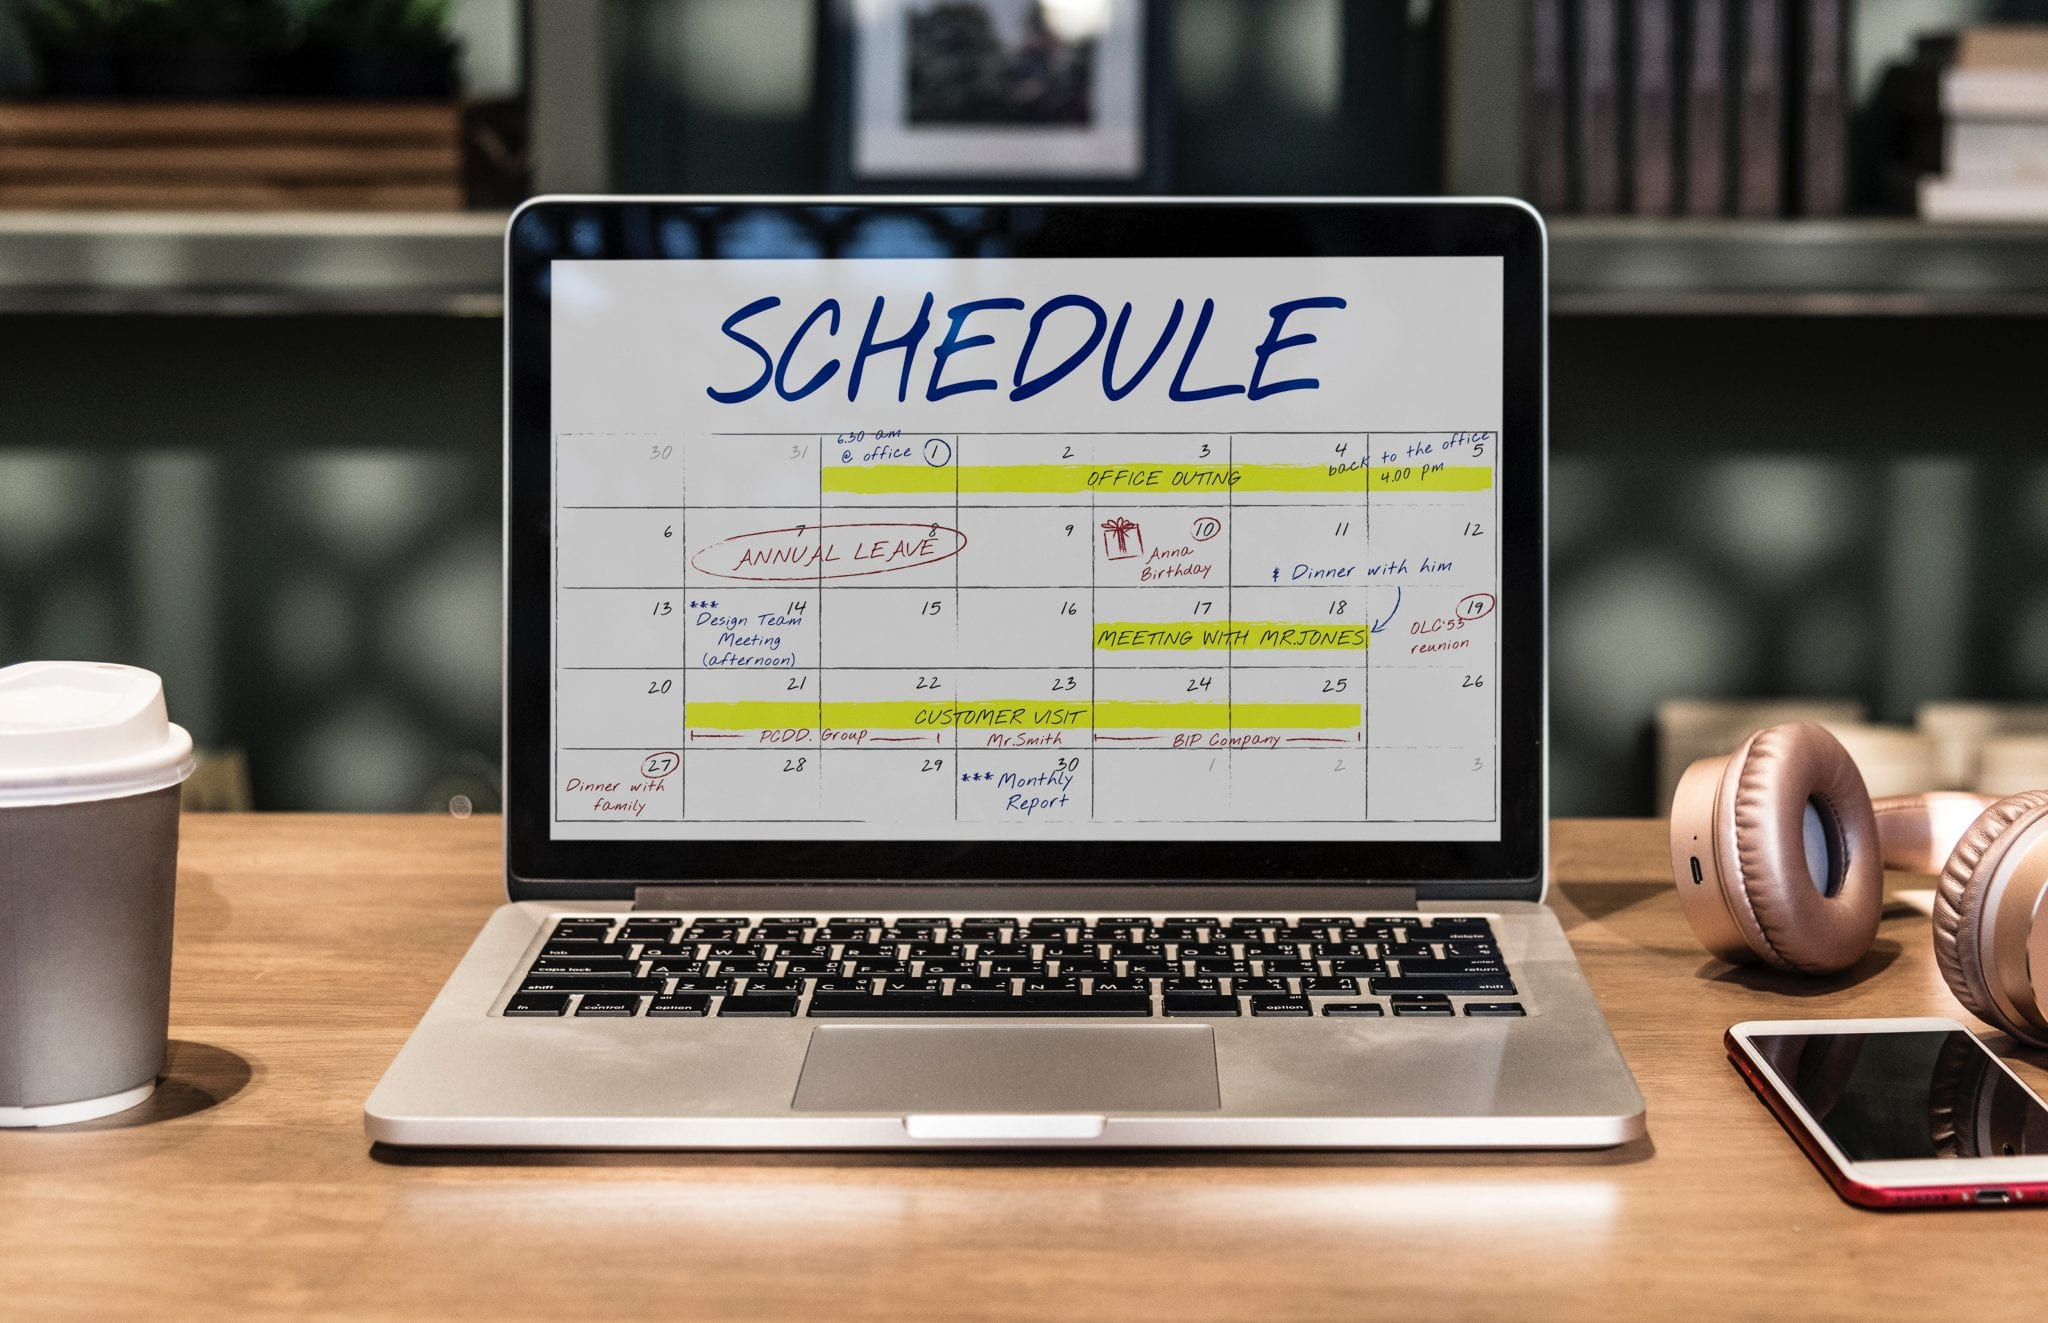 5 Scheduling Software Tips to Get You Ahead in 2020